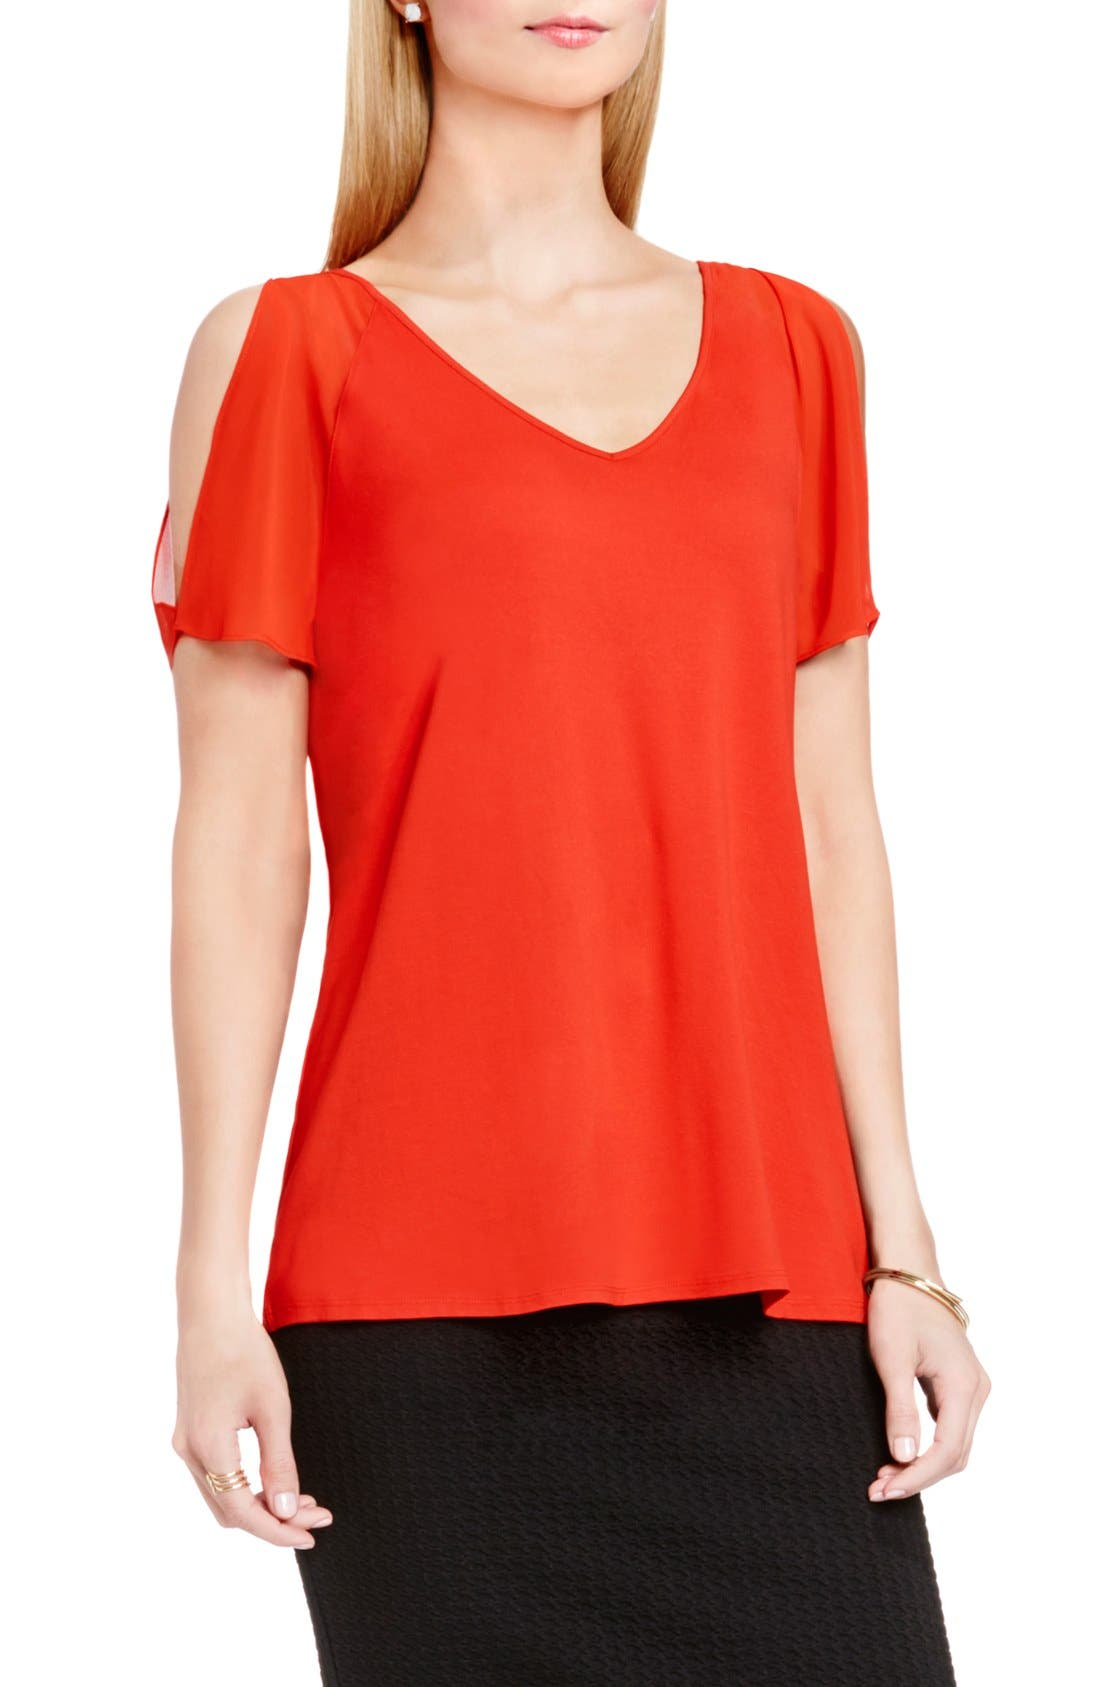 Alternate Image 1 Selected - Vince Camuto Chiffon Cold Shoulder V-Neck Blouse